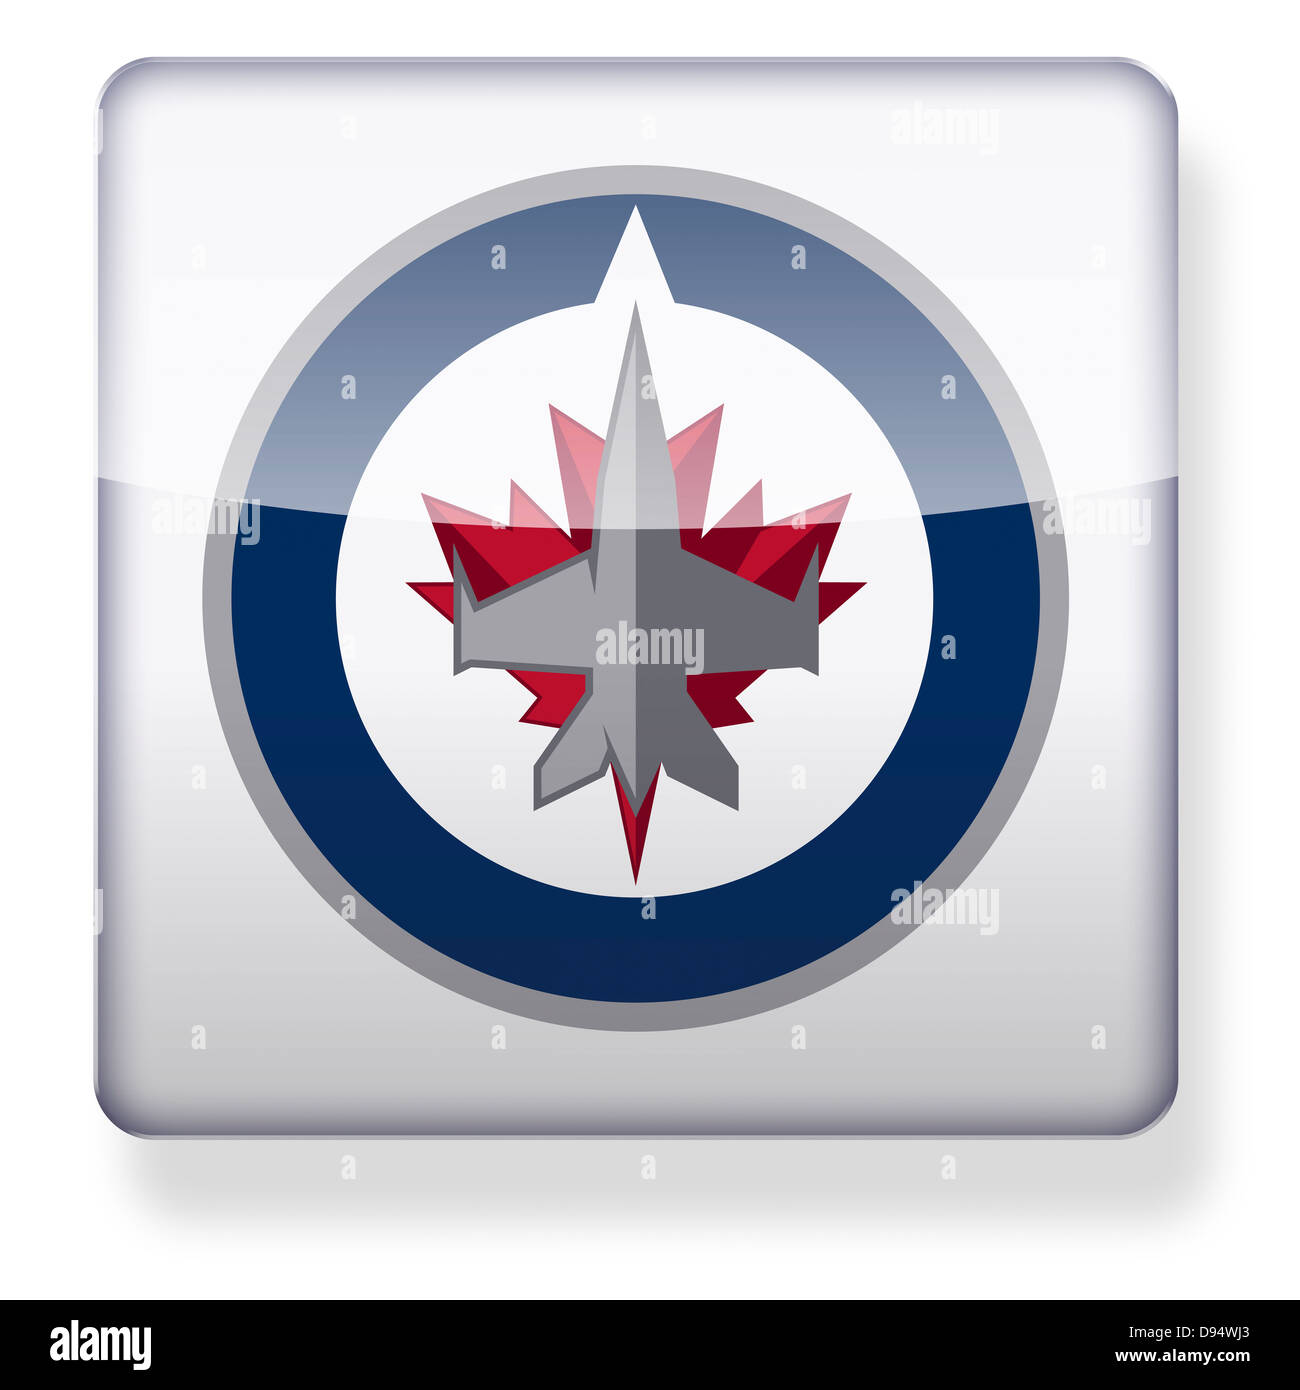 Winnipeg Jets hockey team logo as an app icon. Clipping path included. - Stock Image